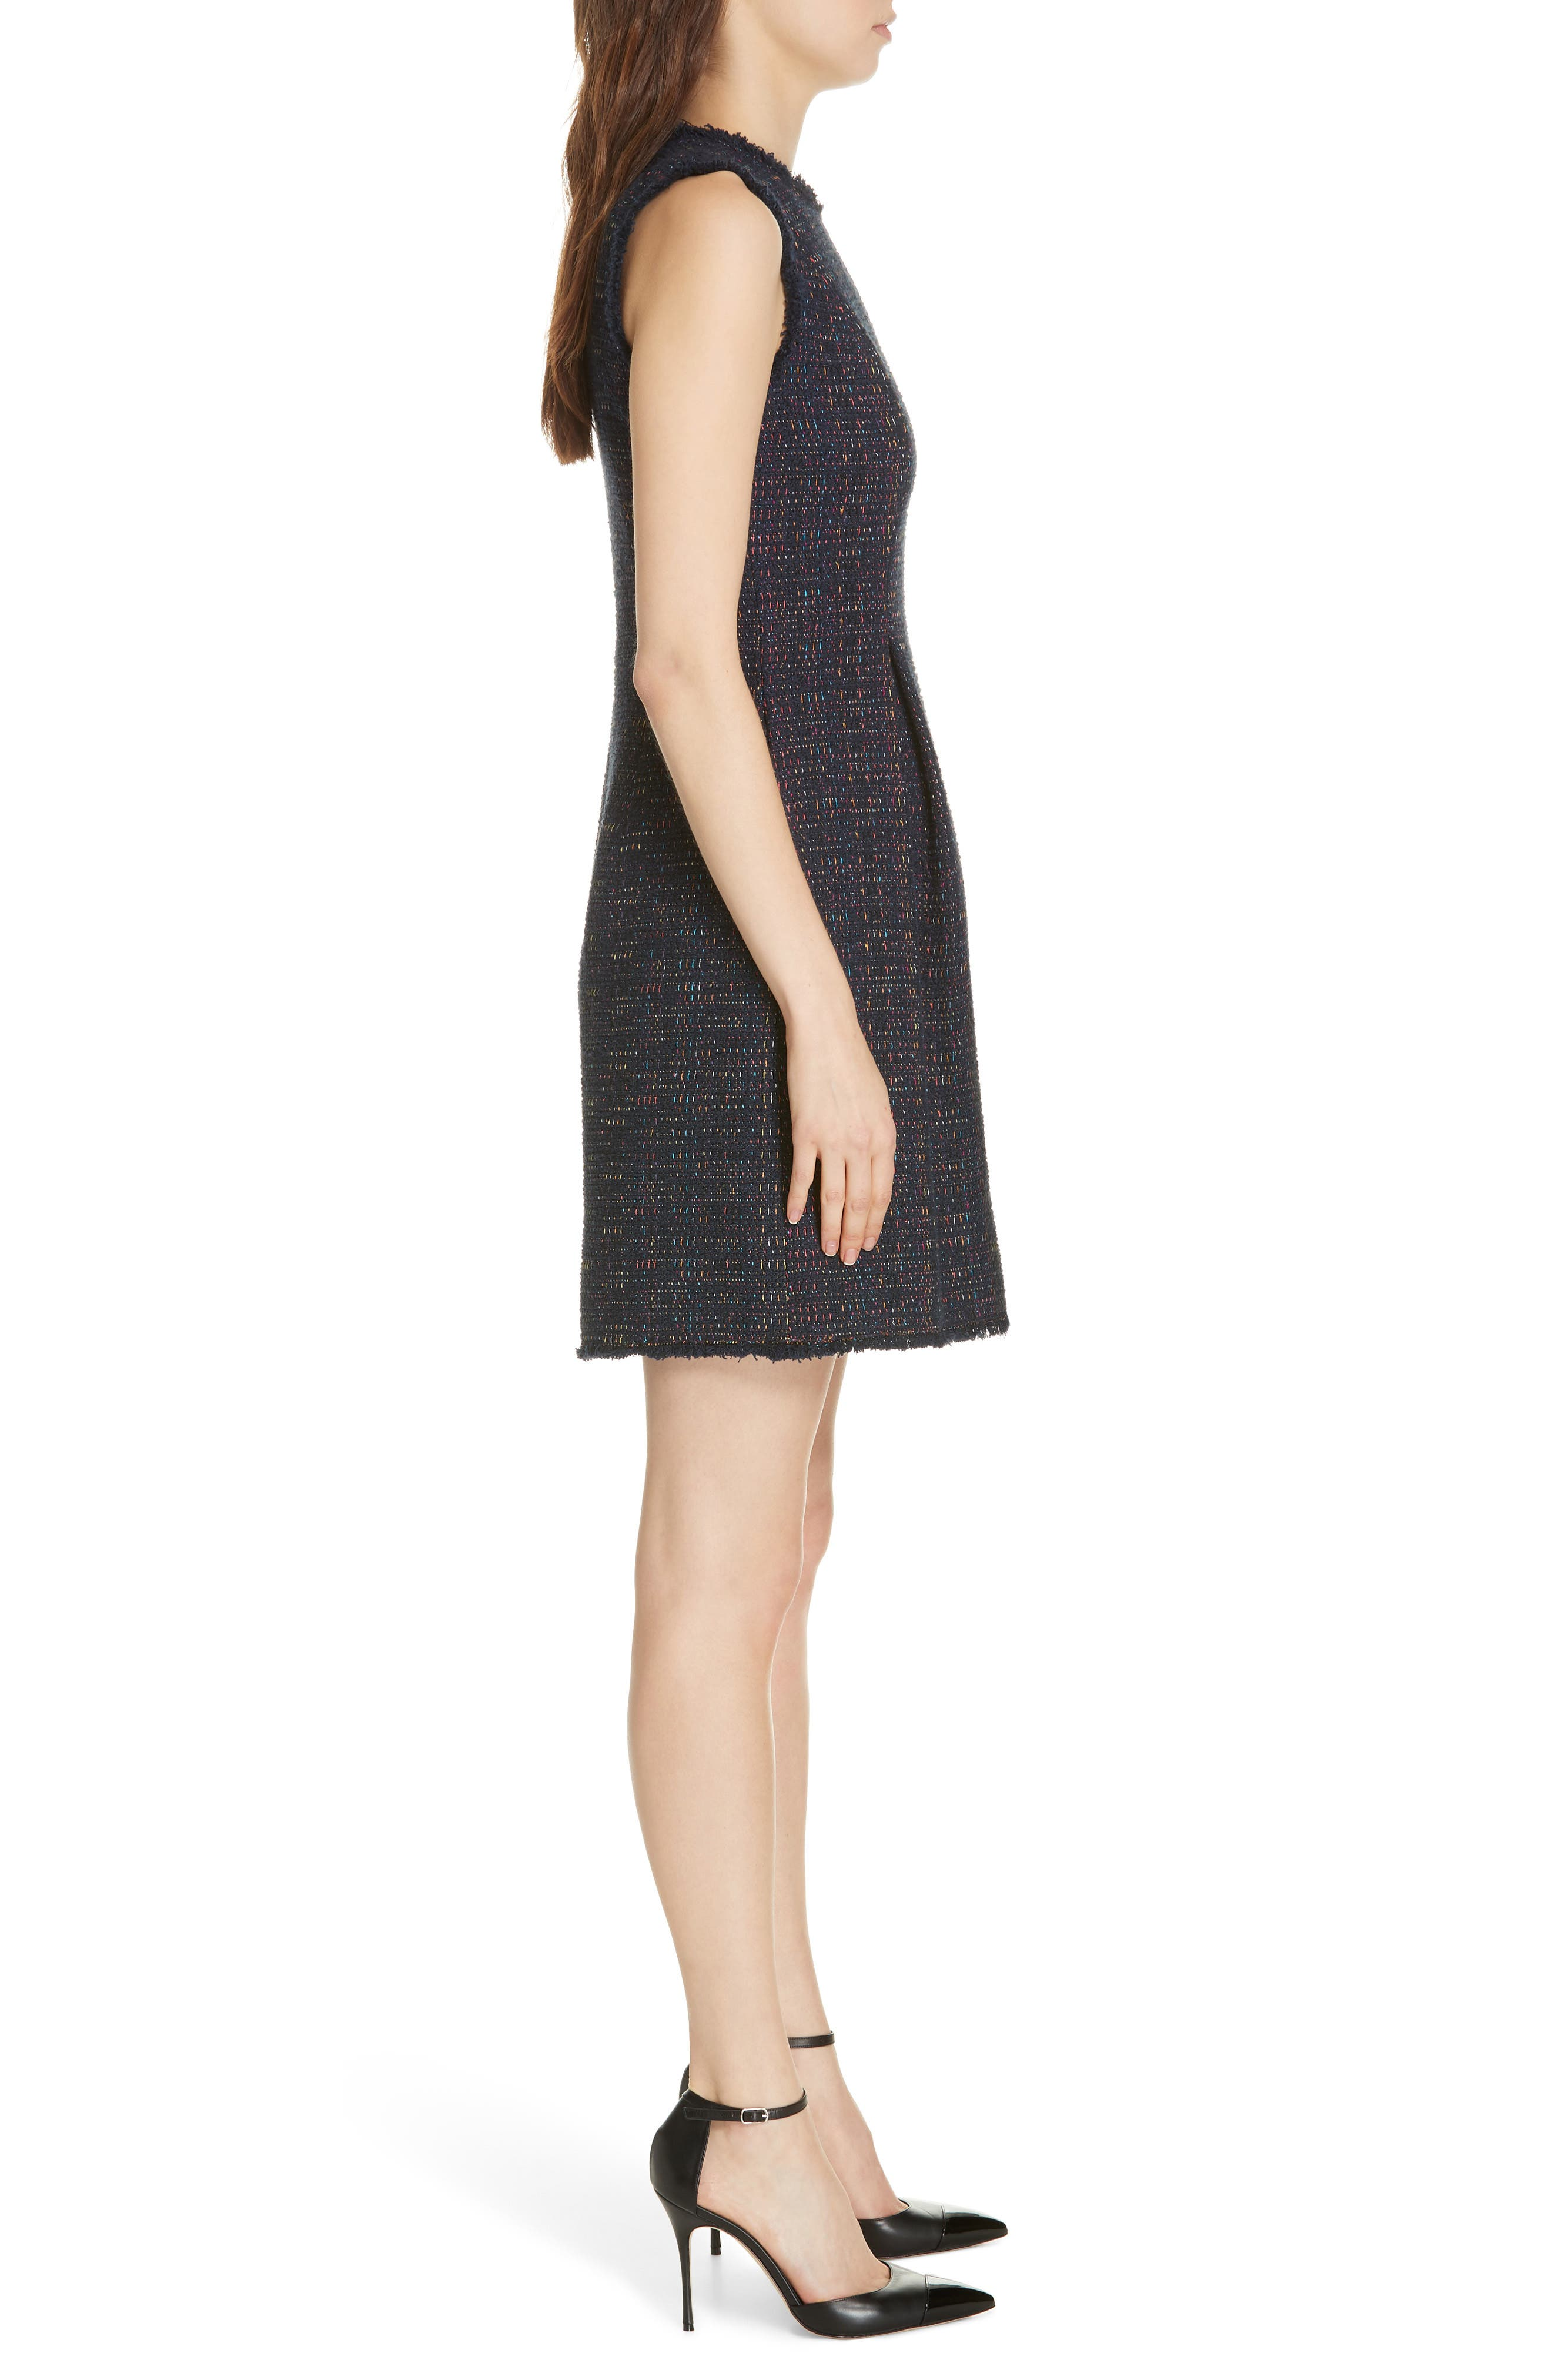 REBECCA TAYLOR, Rainbow Tweed Fit & Flare Dress, Alternate thumbnail 4, color, NAVY